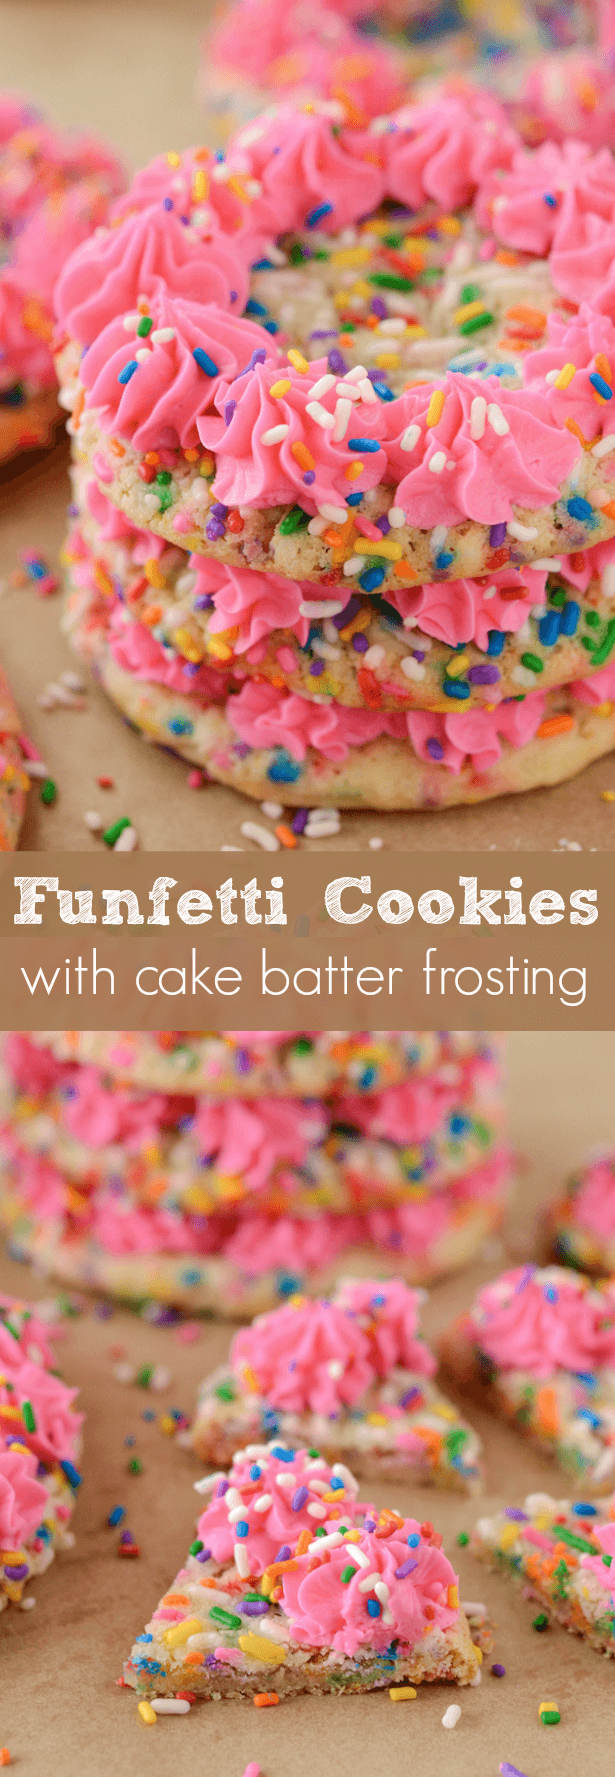 Funfetti Cookies Collage